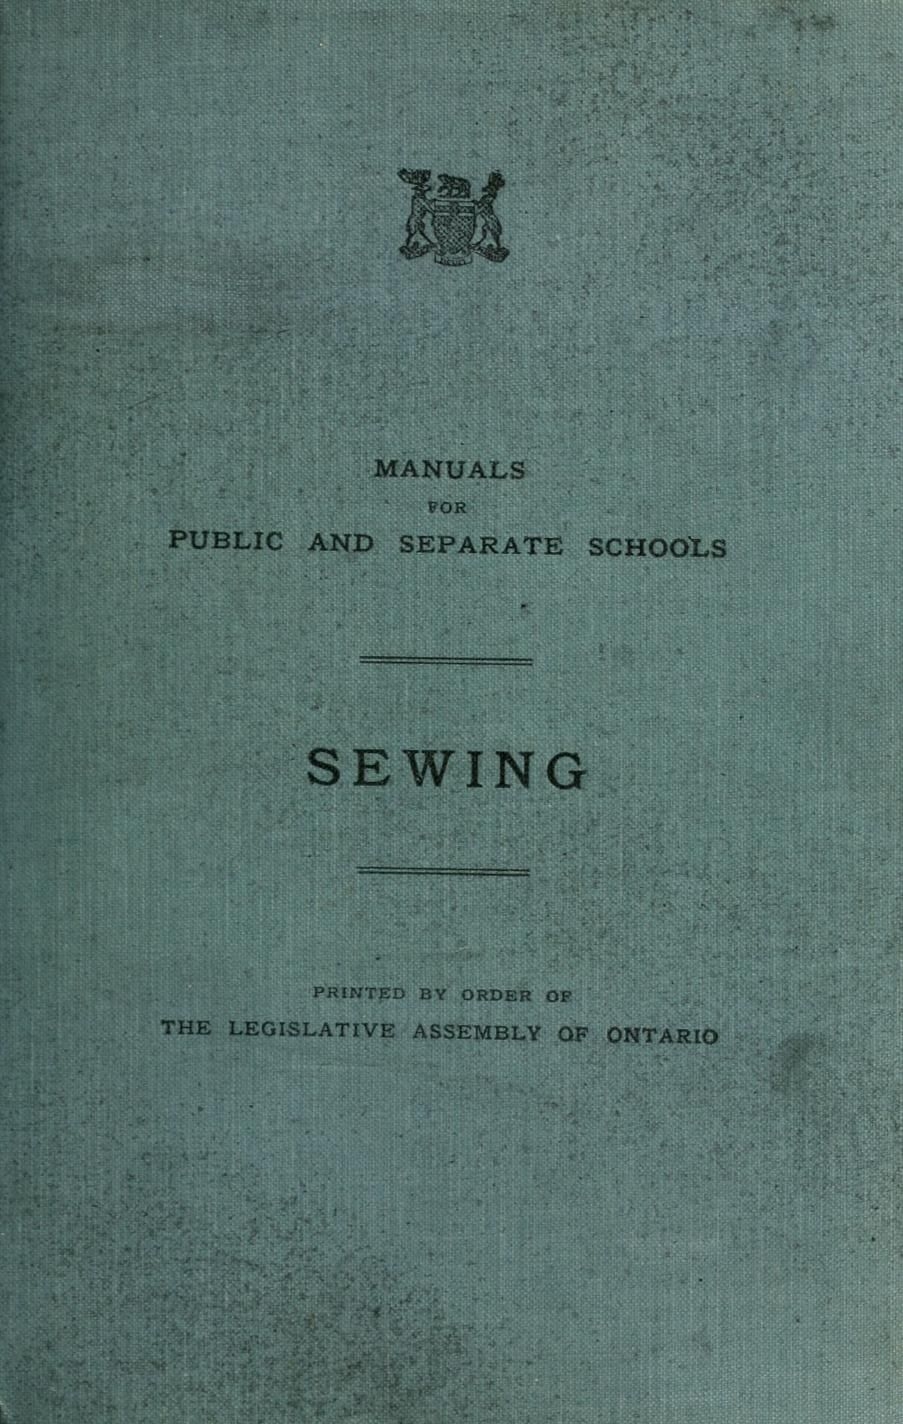 """Manuals For Public and Separate Schools: Sewing"" by: The Legislative Assembly of Ontario (1919) 